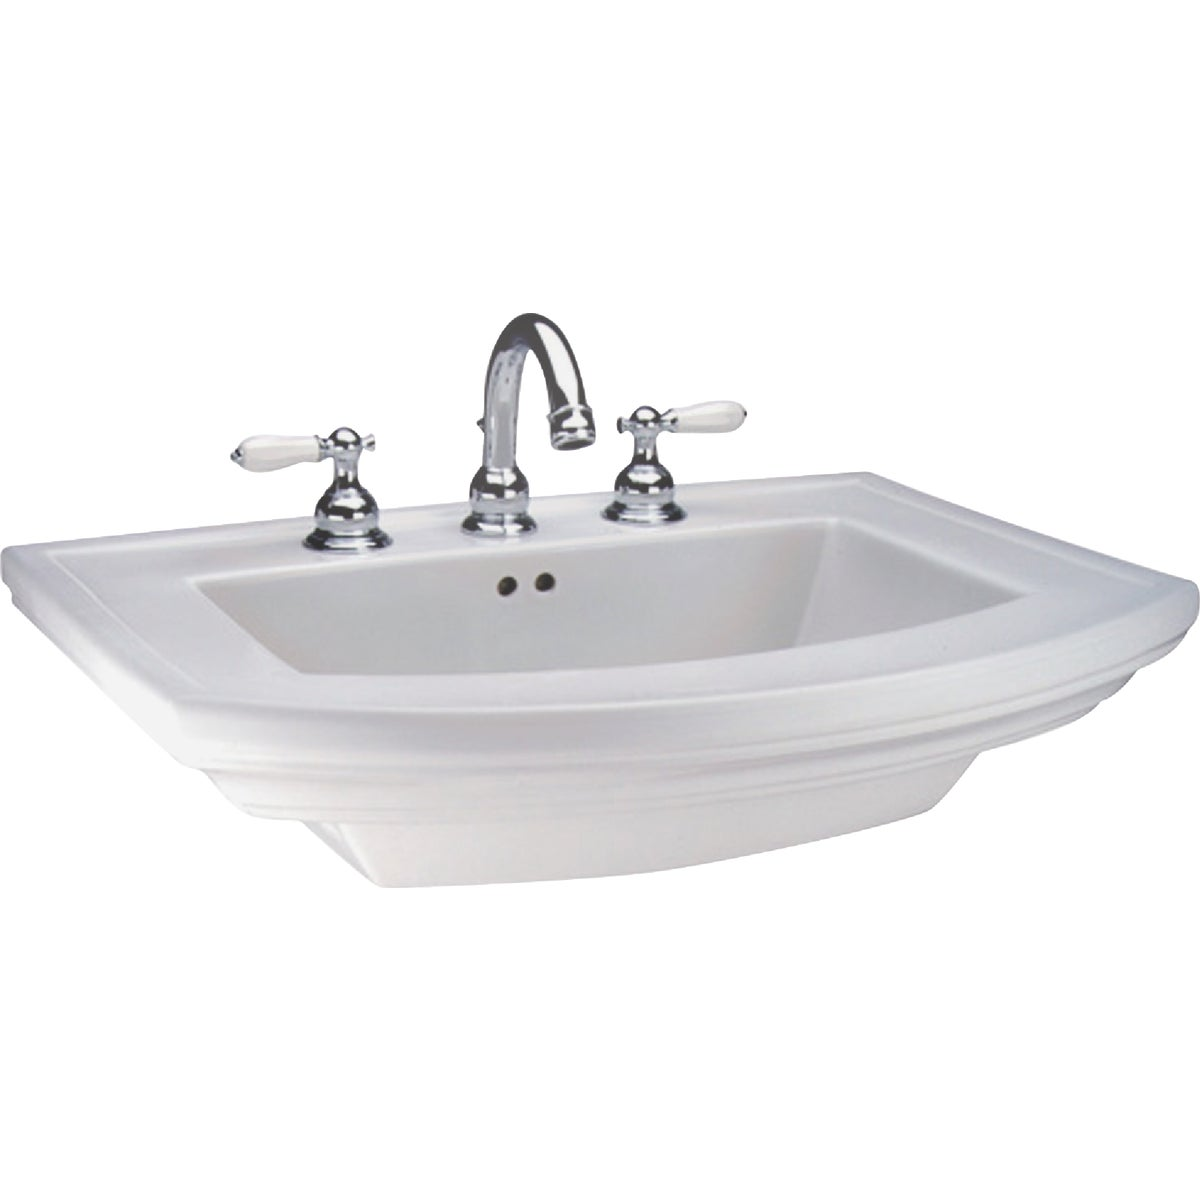 BARRETT WHT PED LAVATORY - 328410000 by Mansfield Plumbing